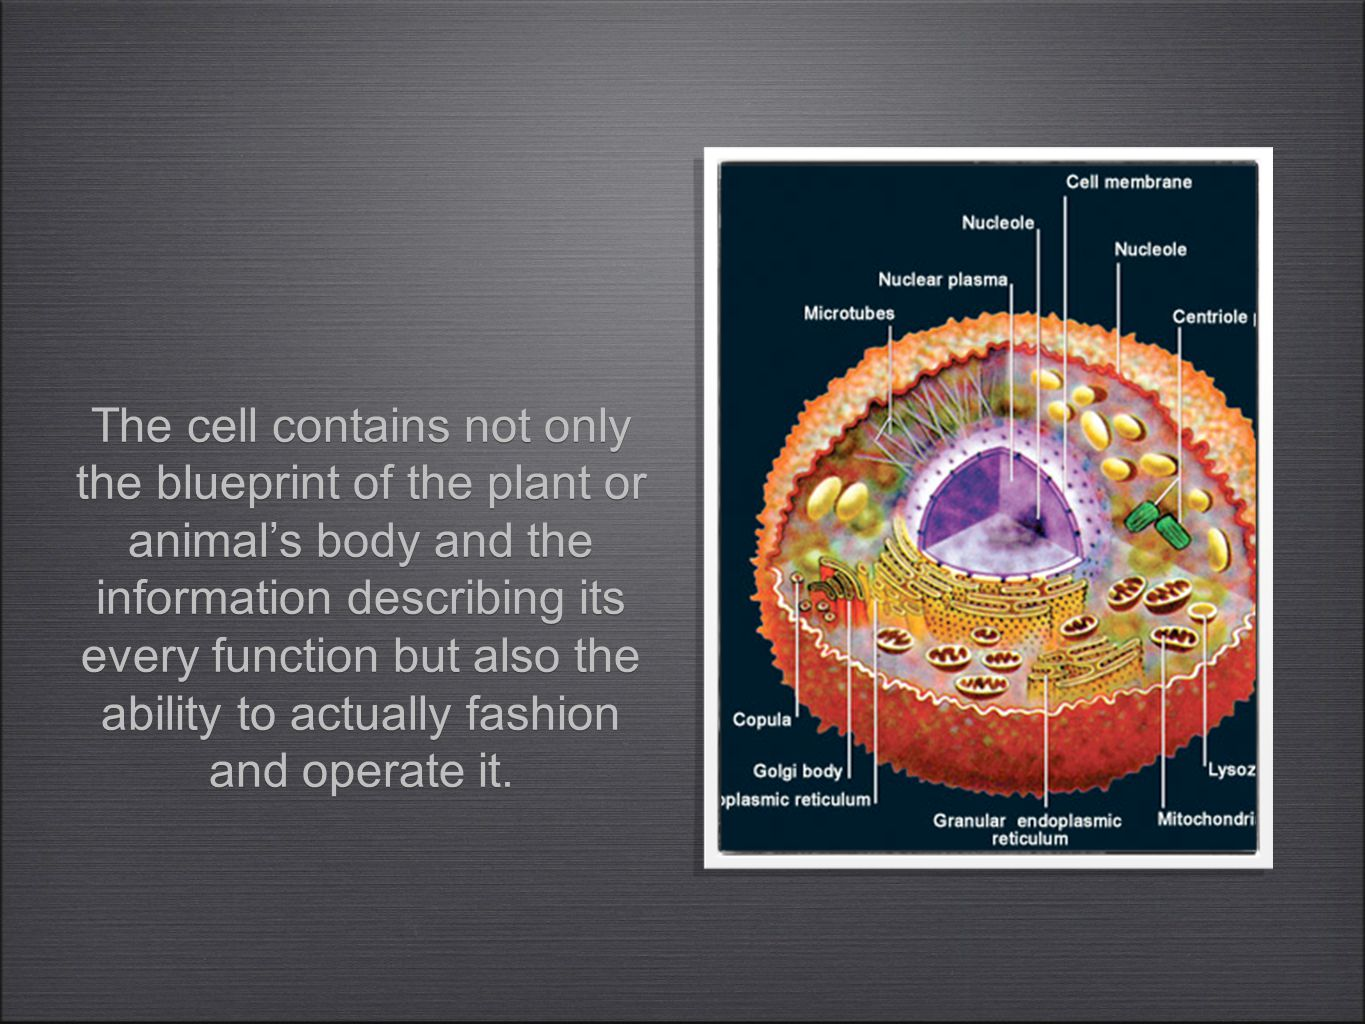 The cell contains not only the blueprint of the plant or animal's body and the information describing its every function but also the ability to actually fashion and operate it.